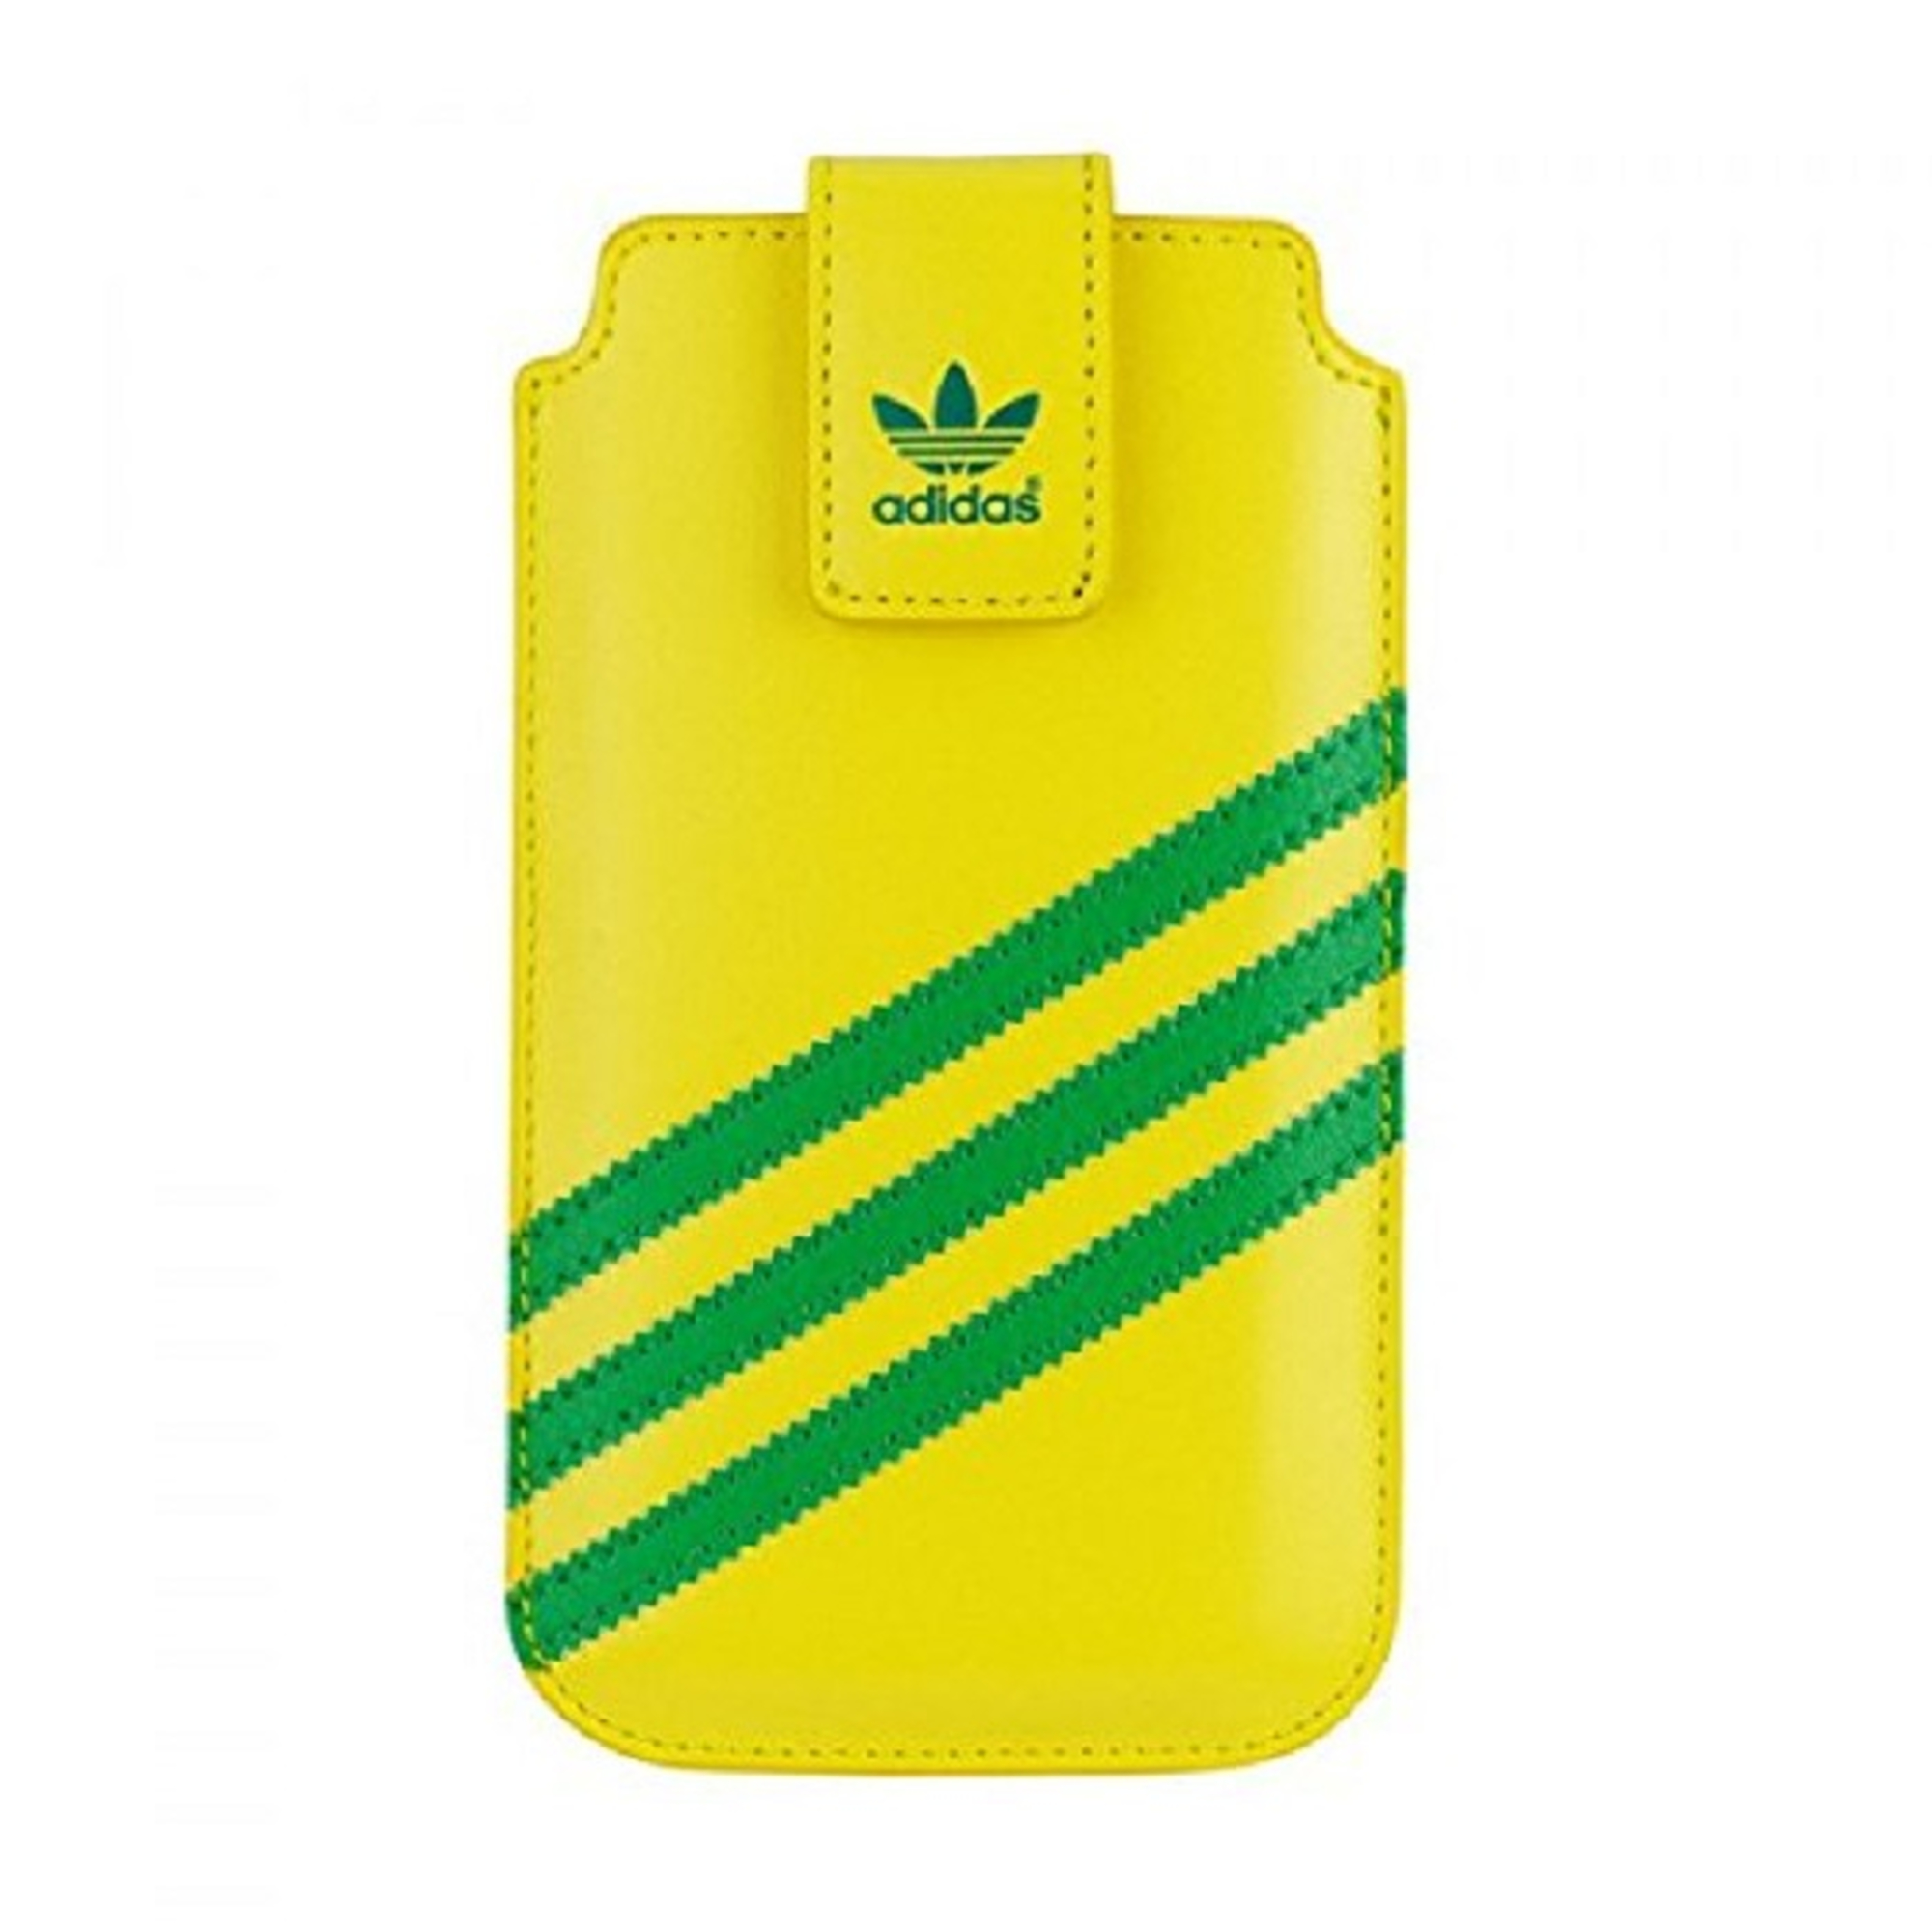 adidas Originals Tasche Sleeve XXL iPhone 6 Galaxy S4 Lumia 830 gelb